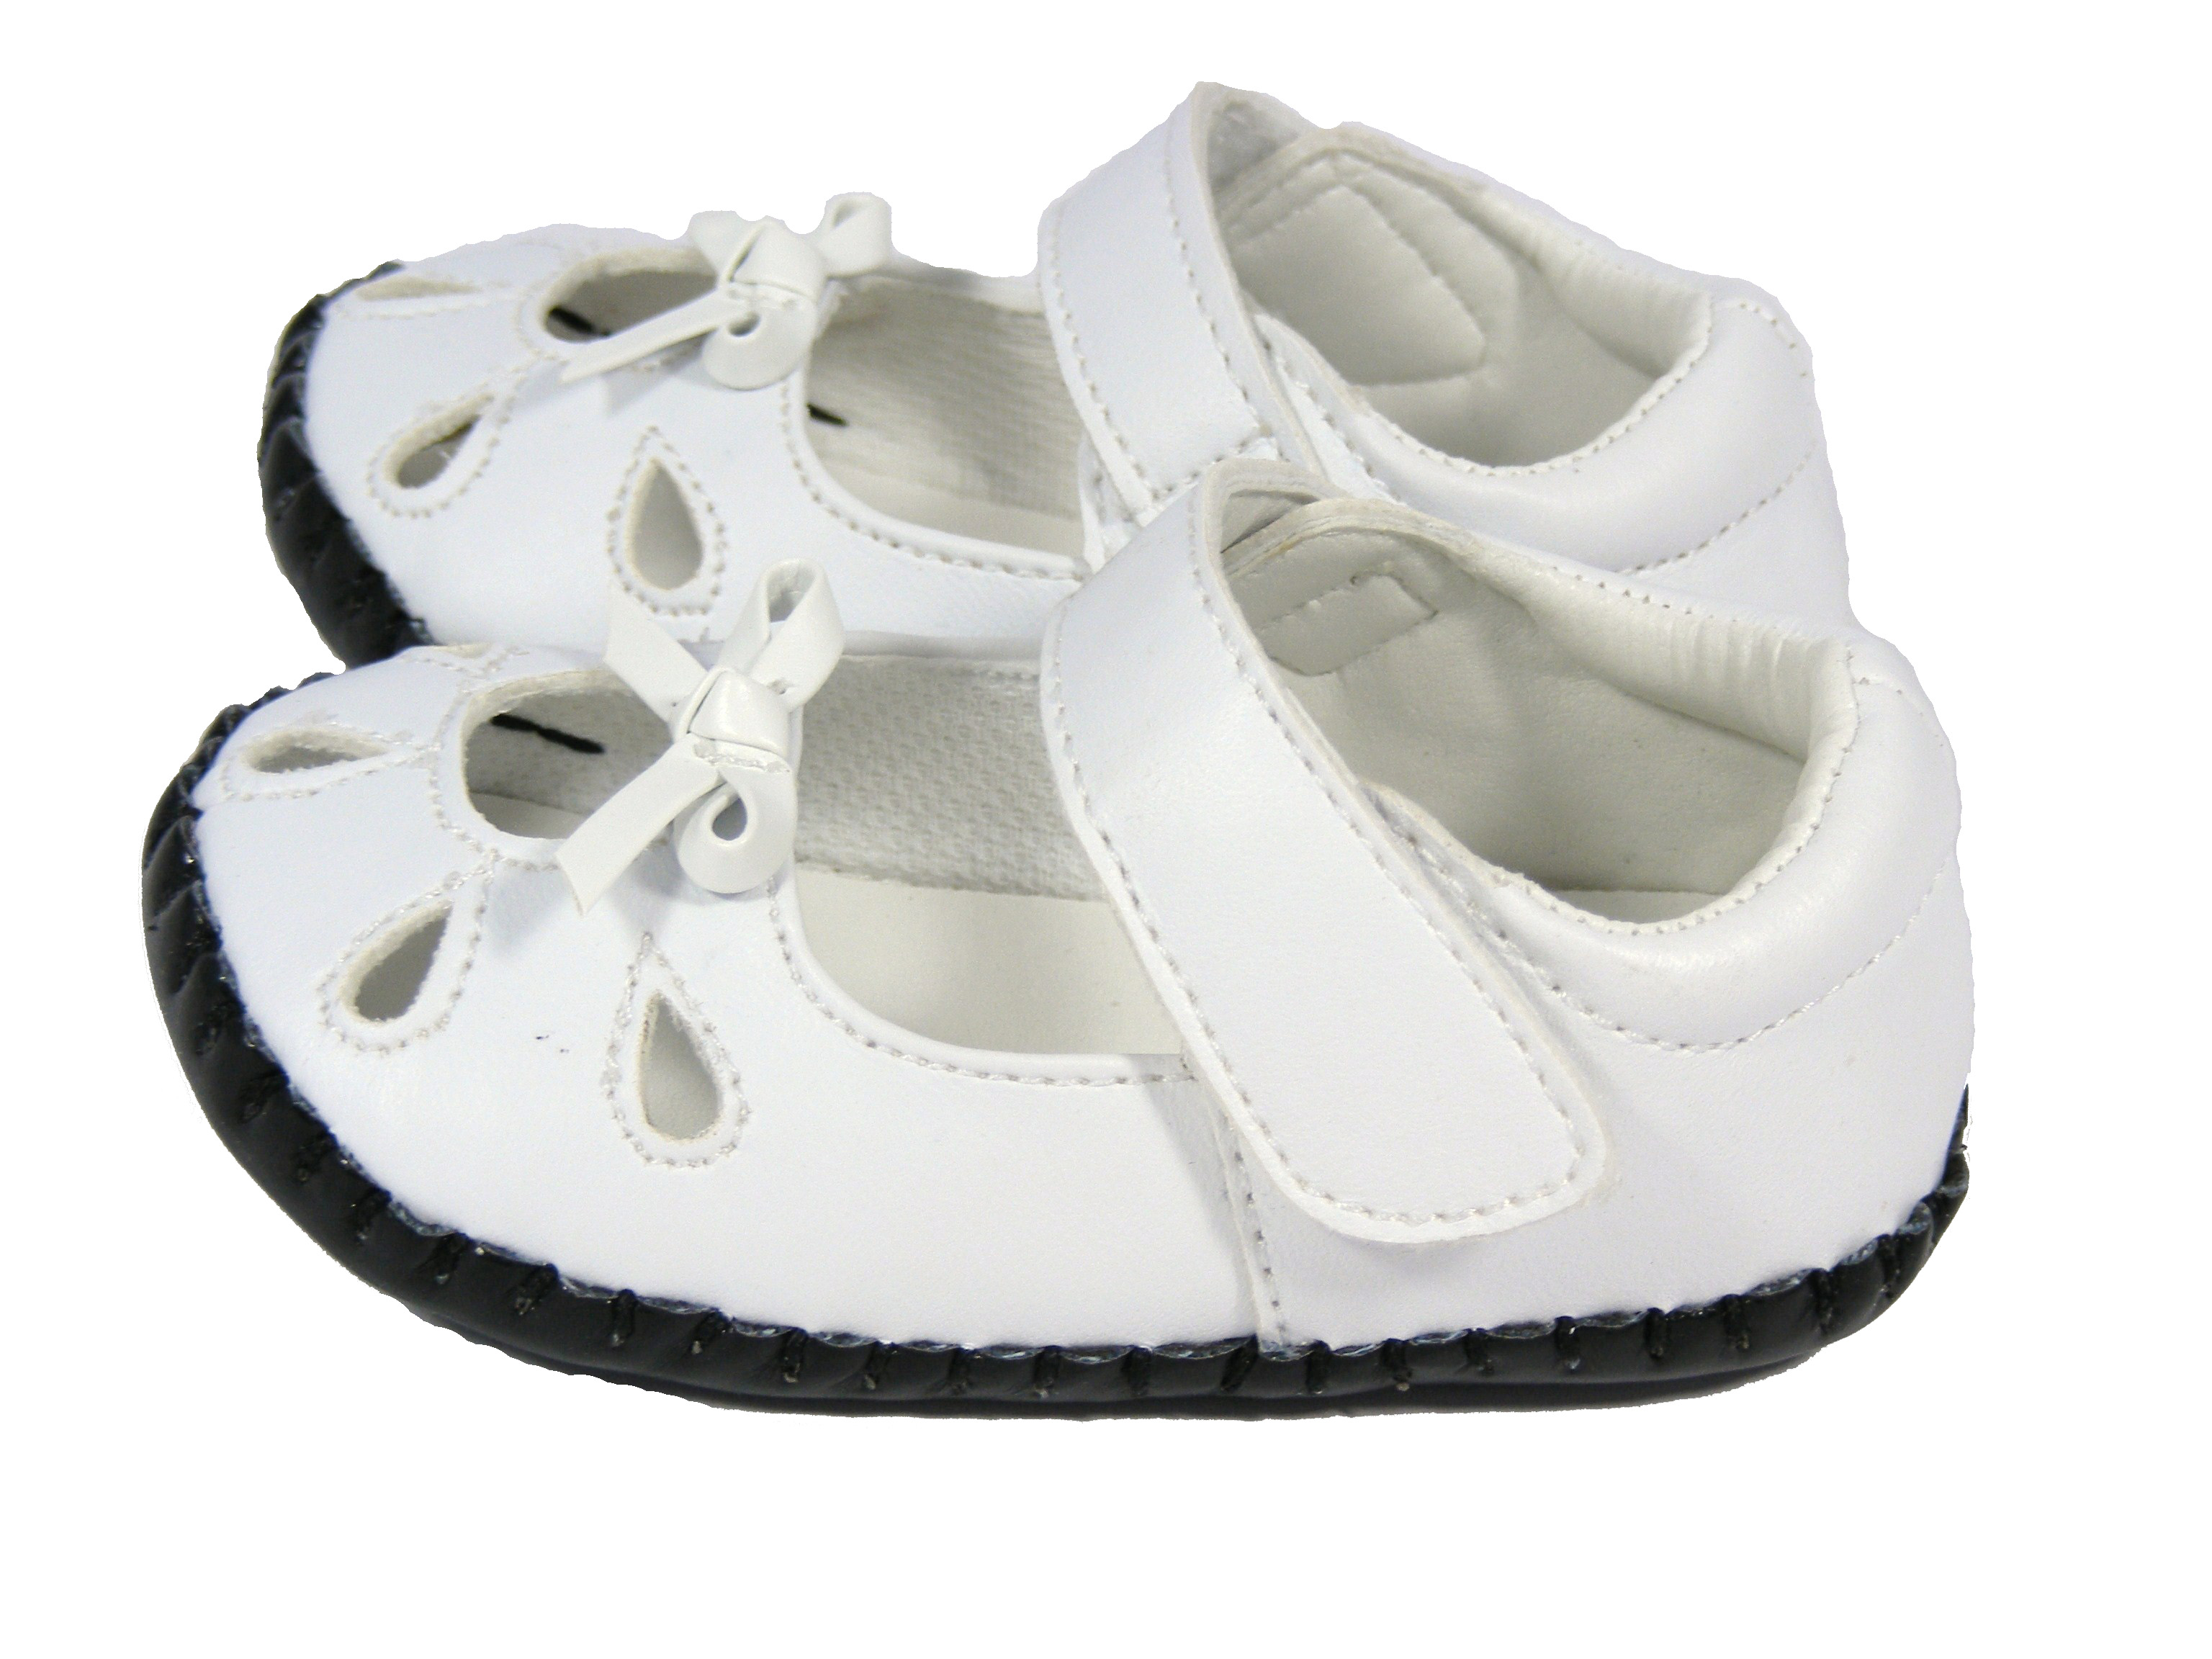 Visit entefile.gq for infant crib booties and kids' boots. Or design custom kids' boots or boat shoes today!